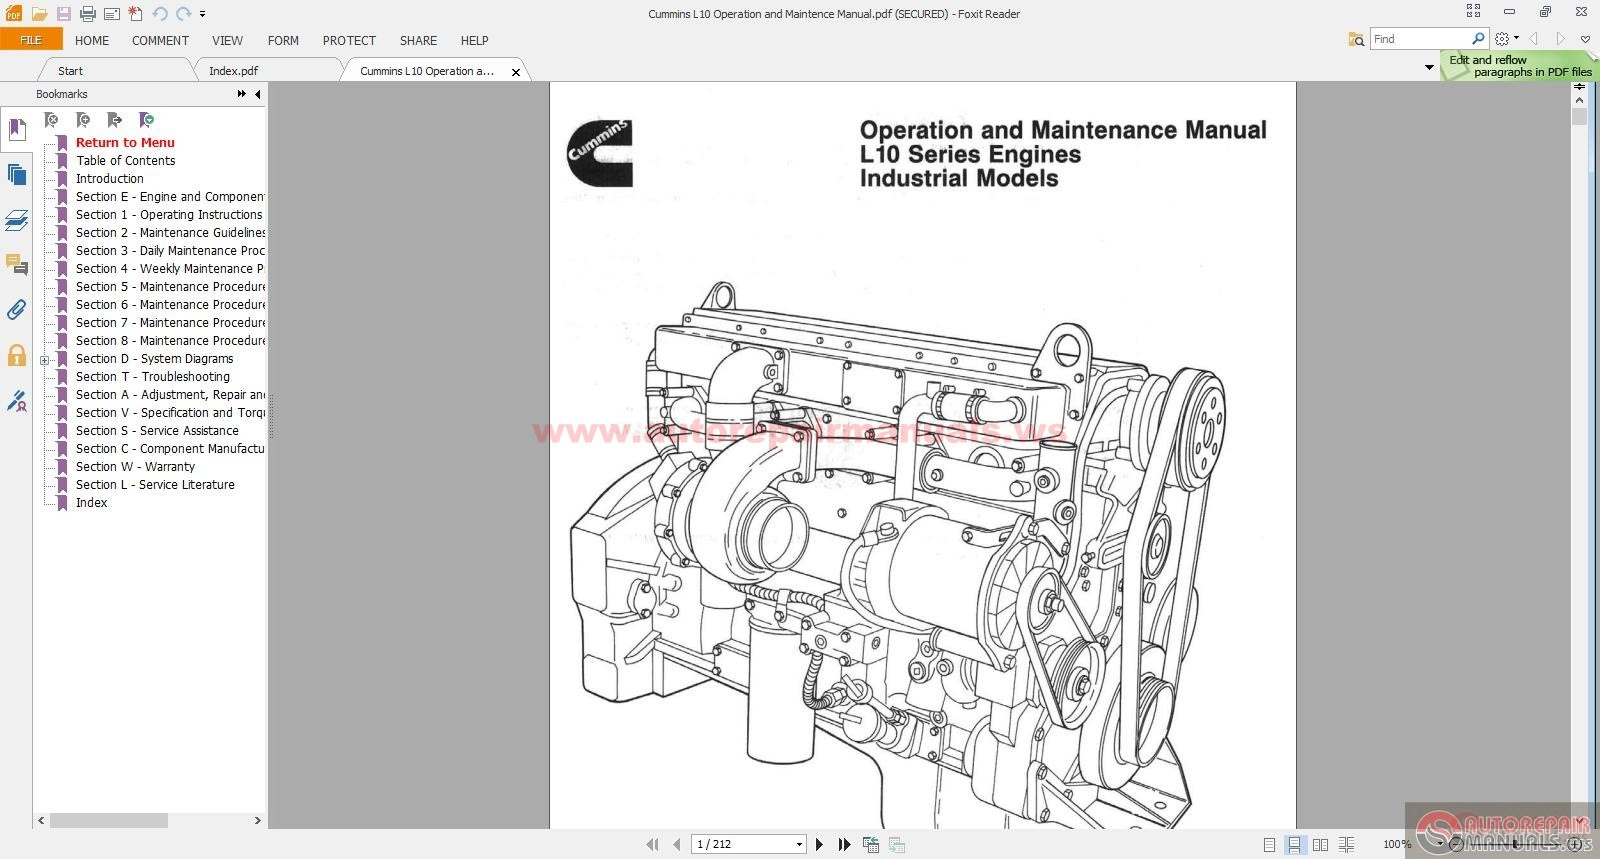 cummins l10 manual collection auto repair manual forum heavy equipment forums download rca g1 user manual hp 840 g1 user manual